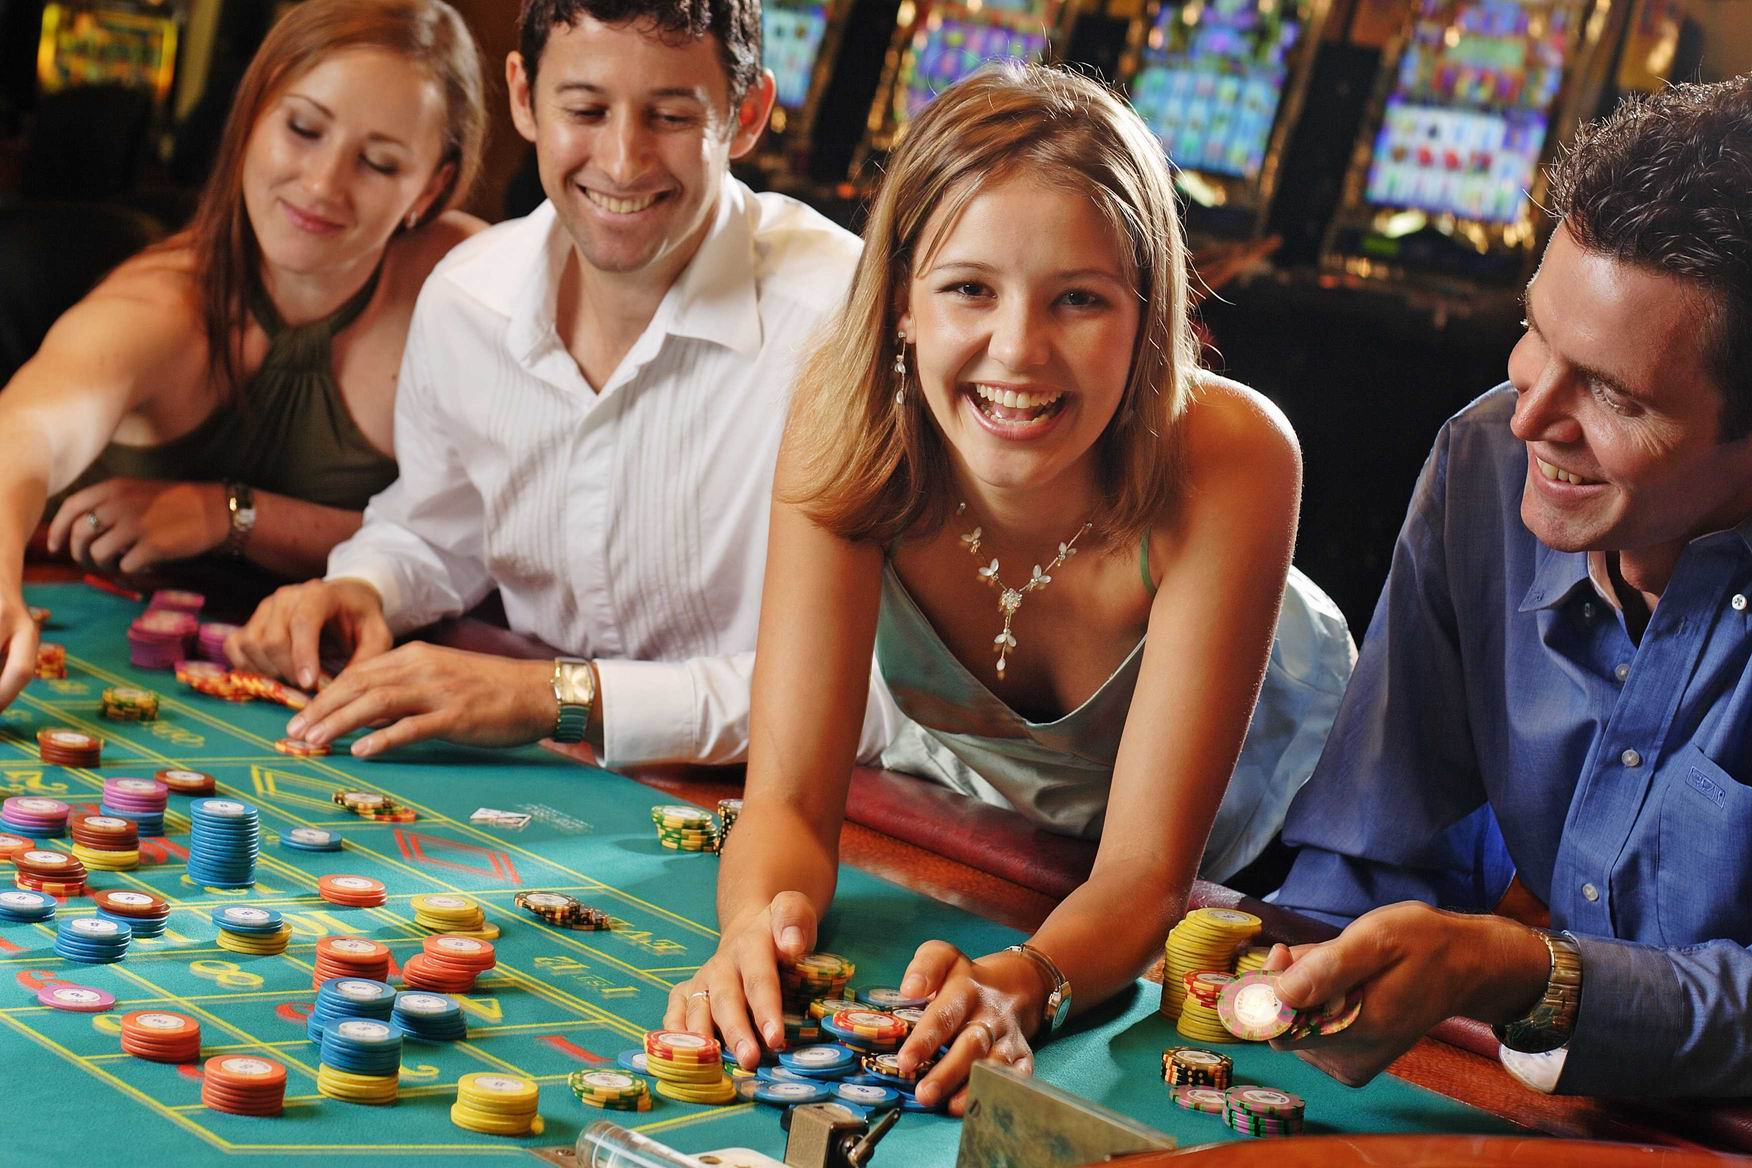 Casino fun play best online gambling sports